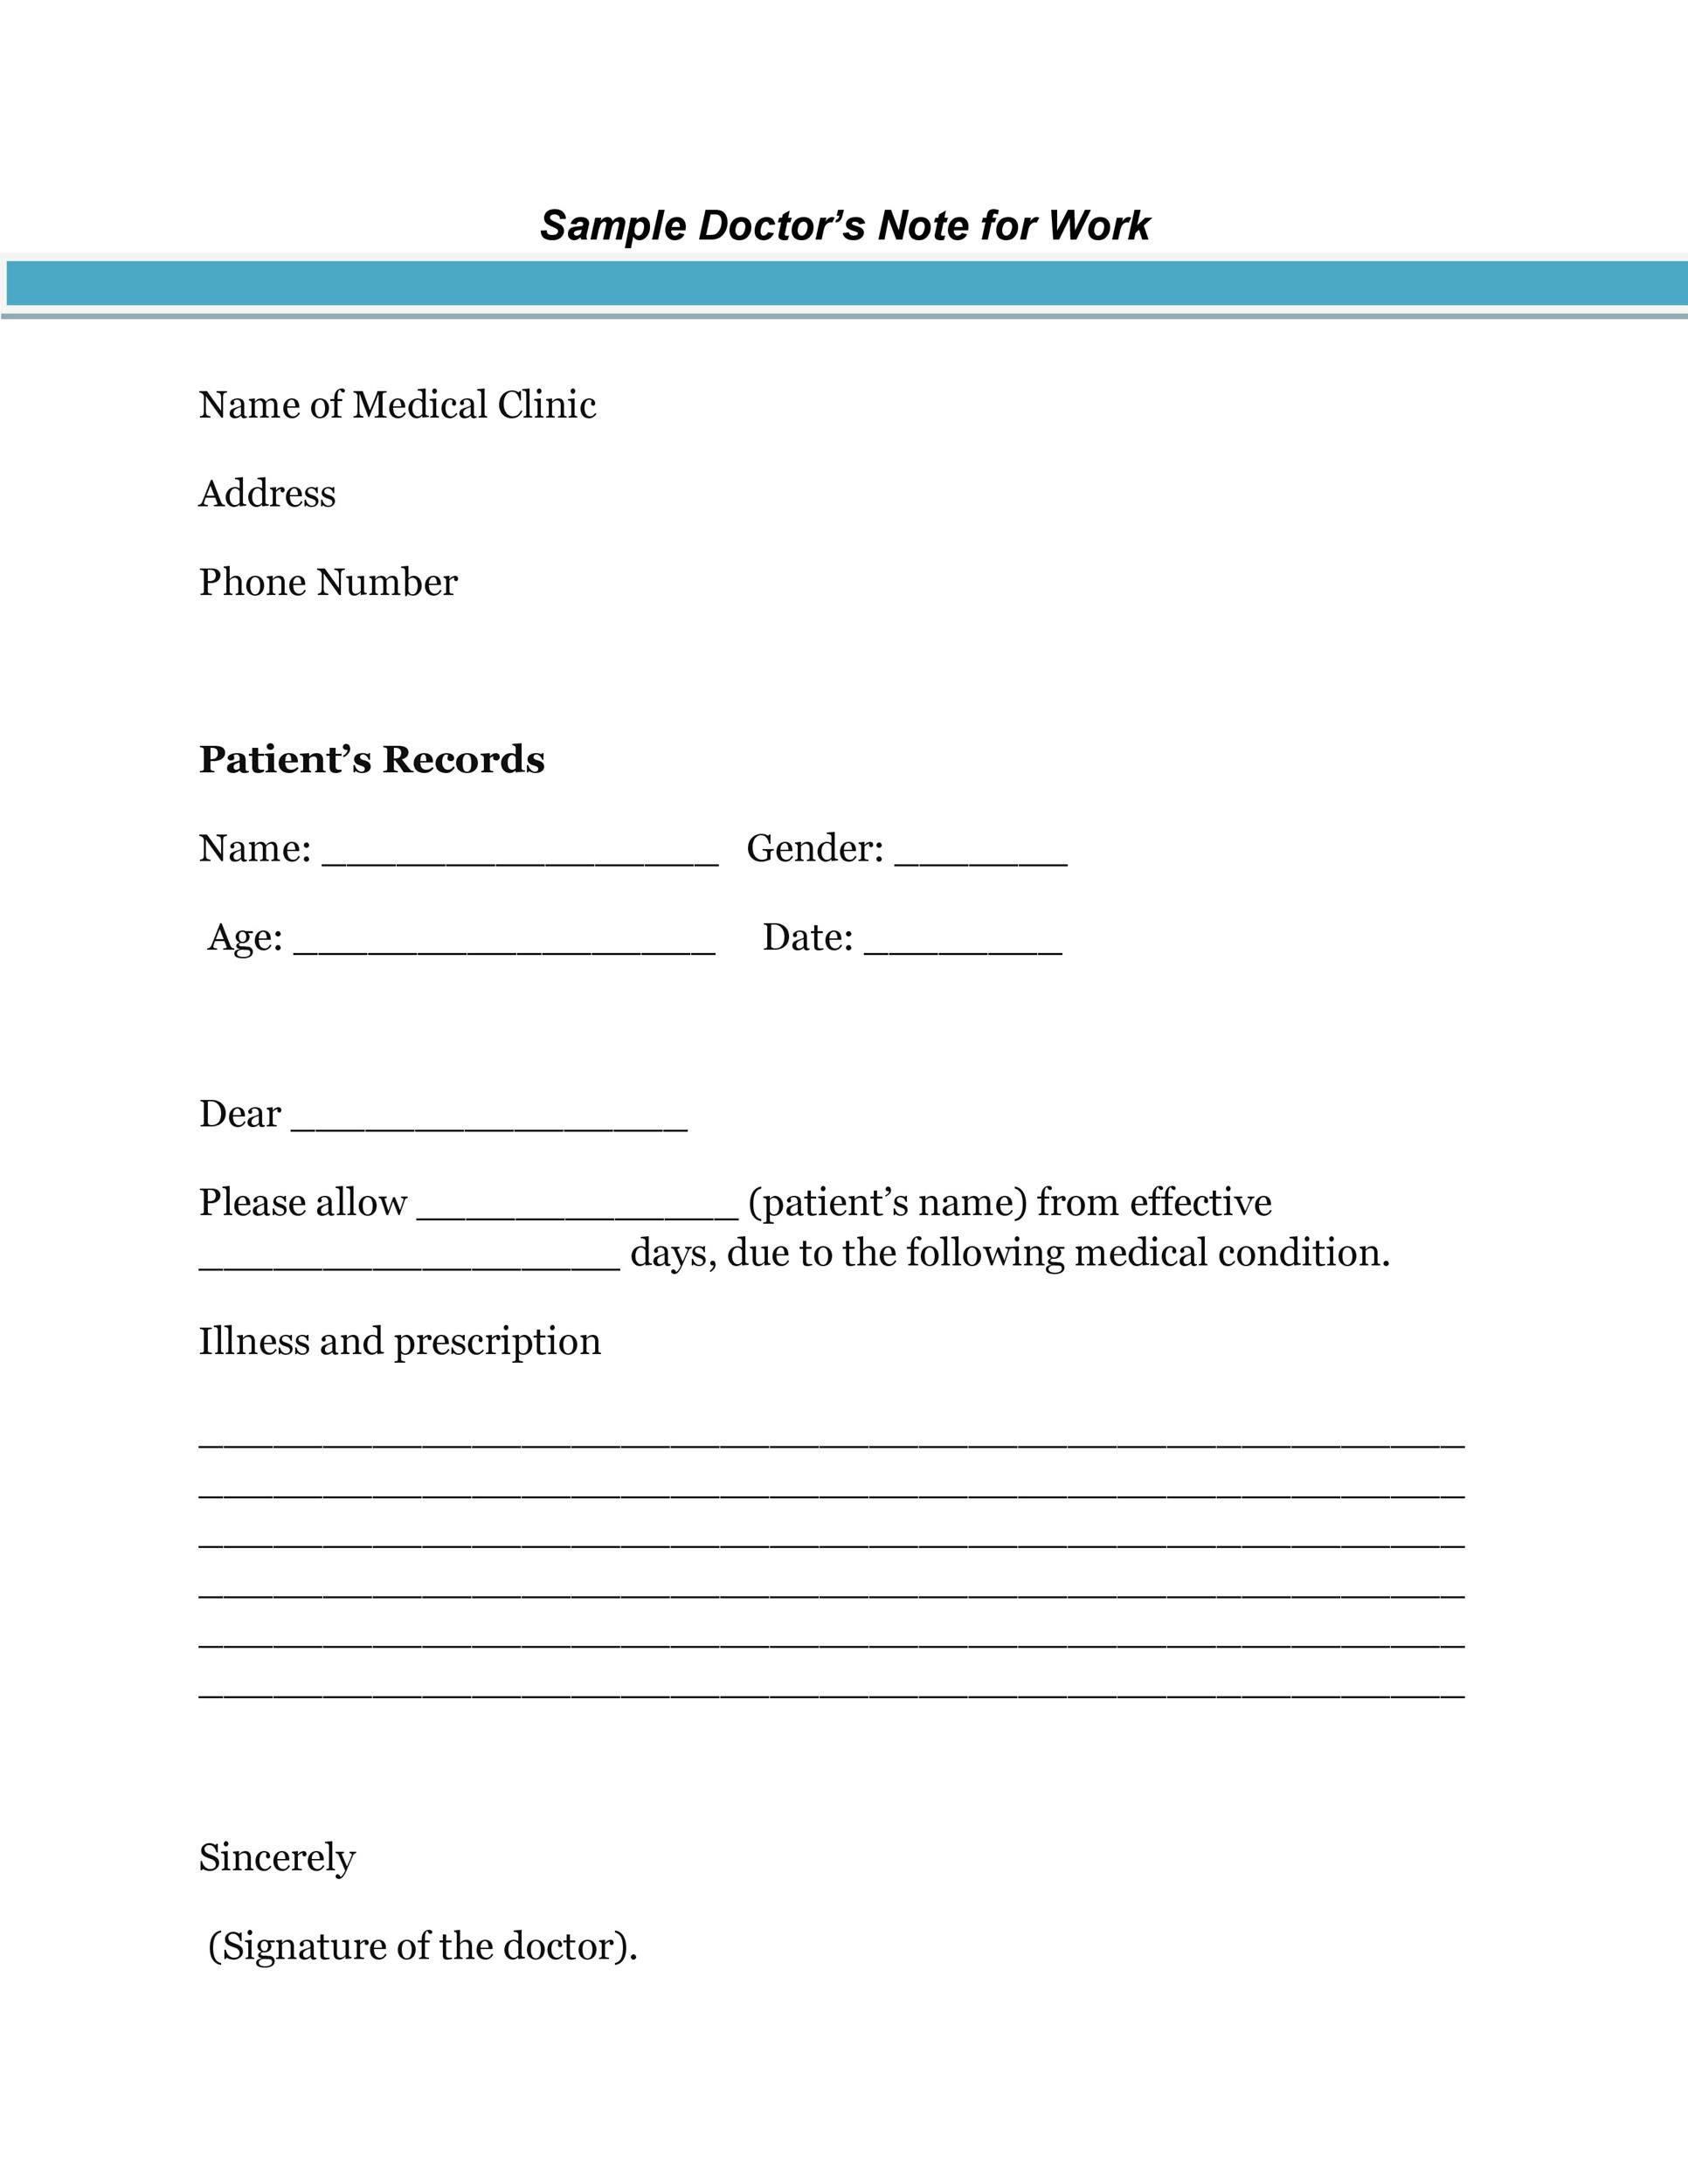 005 Wondrou Doctor Excuse Template For Work Highest Clarity  Note MissingFull